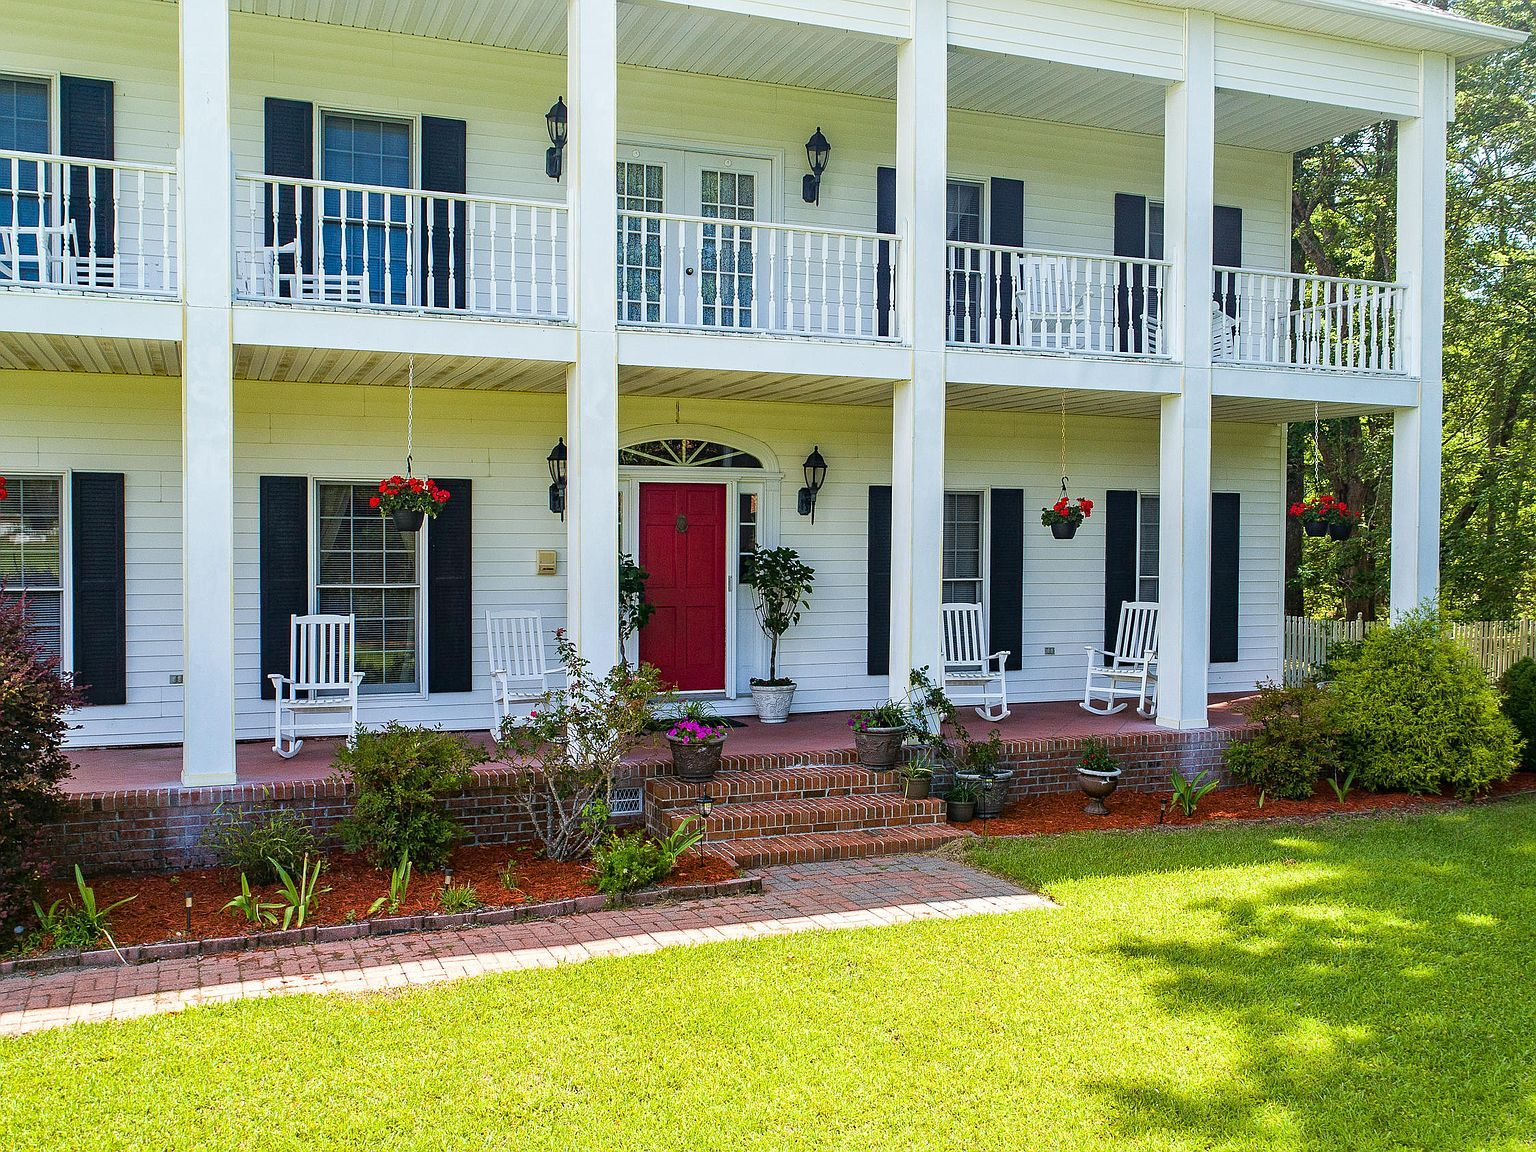 For sale: $575,000. AMAZING 3 STORY HOME ON 13 ACRES WITH ...